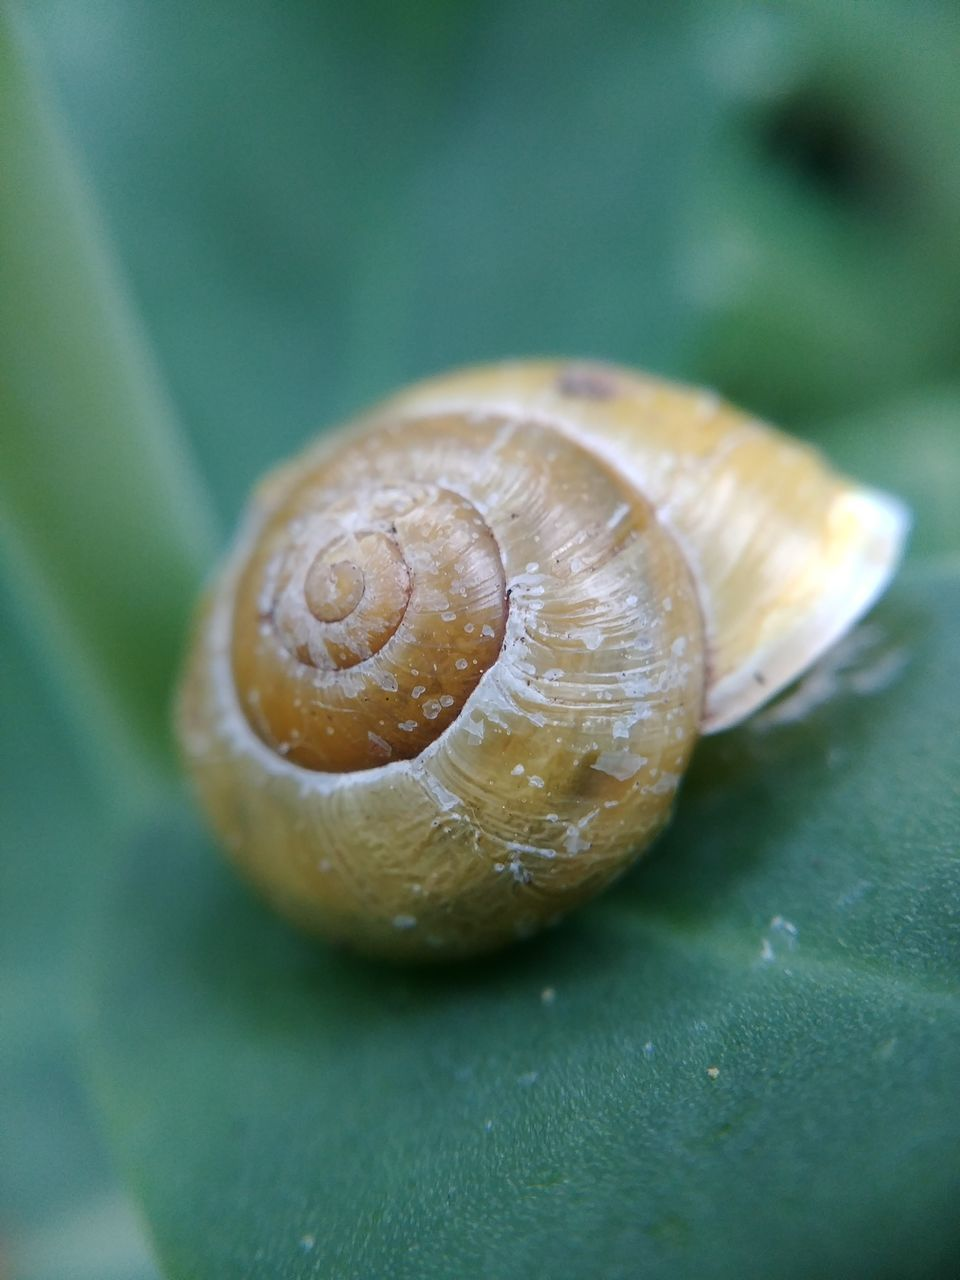 snail, gastropod, close-up, nature, animal themes, spiral, no people, one animal, fragility, animals in the wild, day, beauty in nature, outdoors